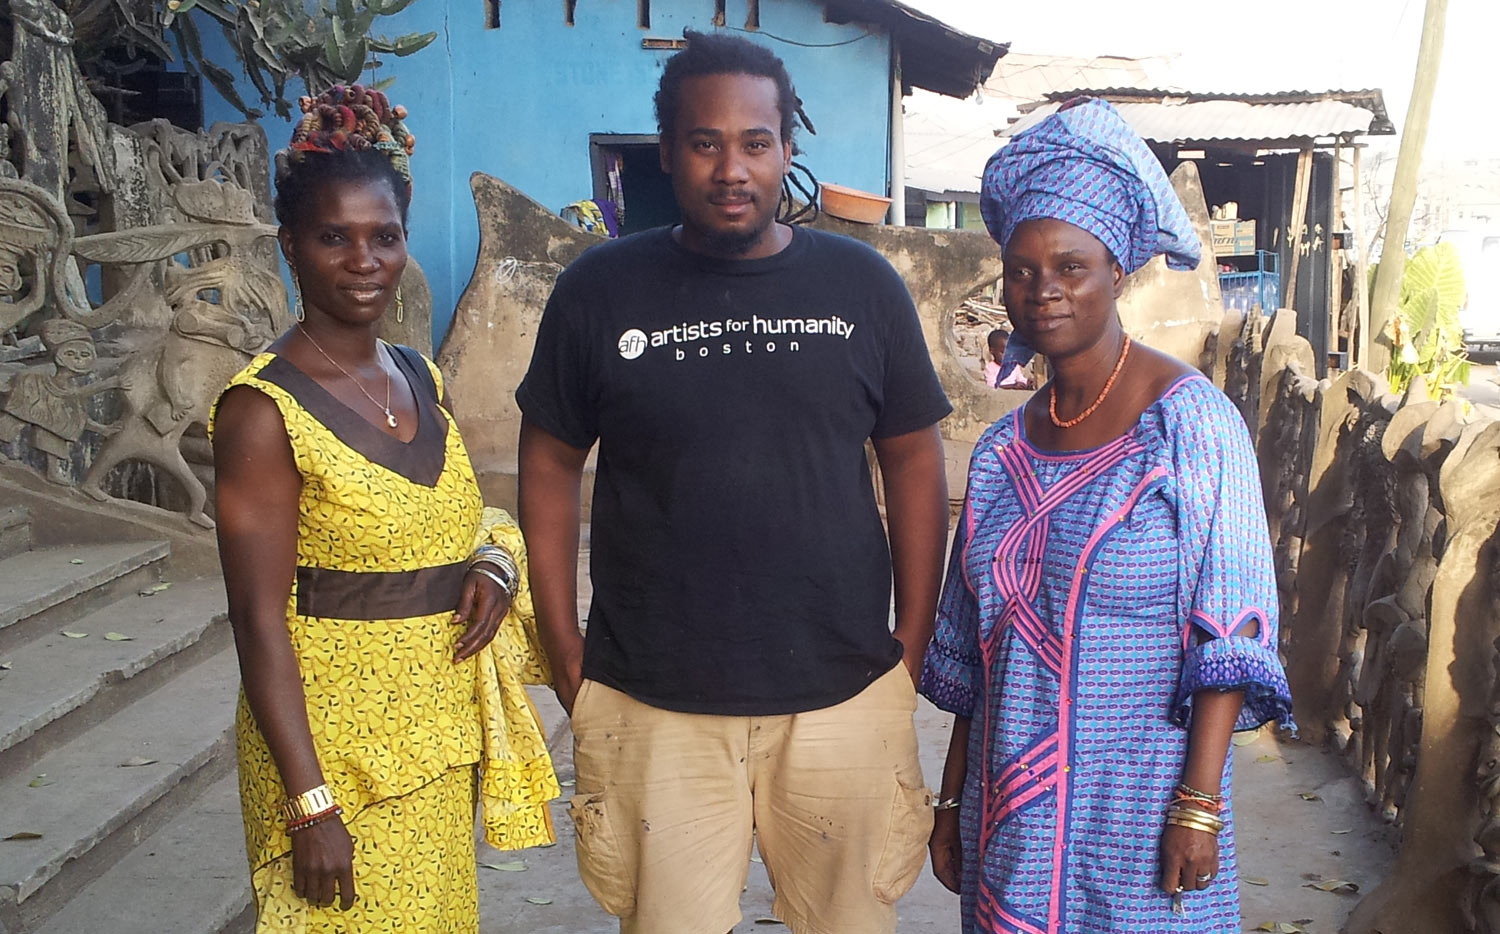 Stephen Hamilton with Oshun priestesses and sisters Ladunni and Adedoyin Olosun in front of Susanne Wenger's house in Osogbo.